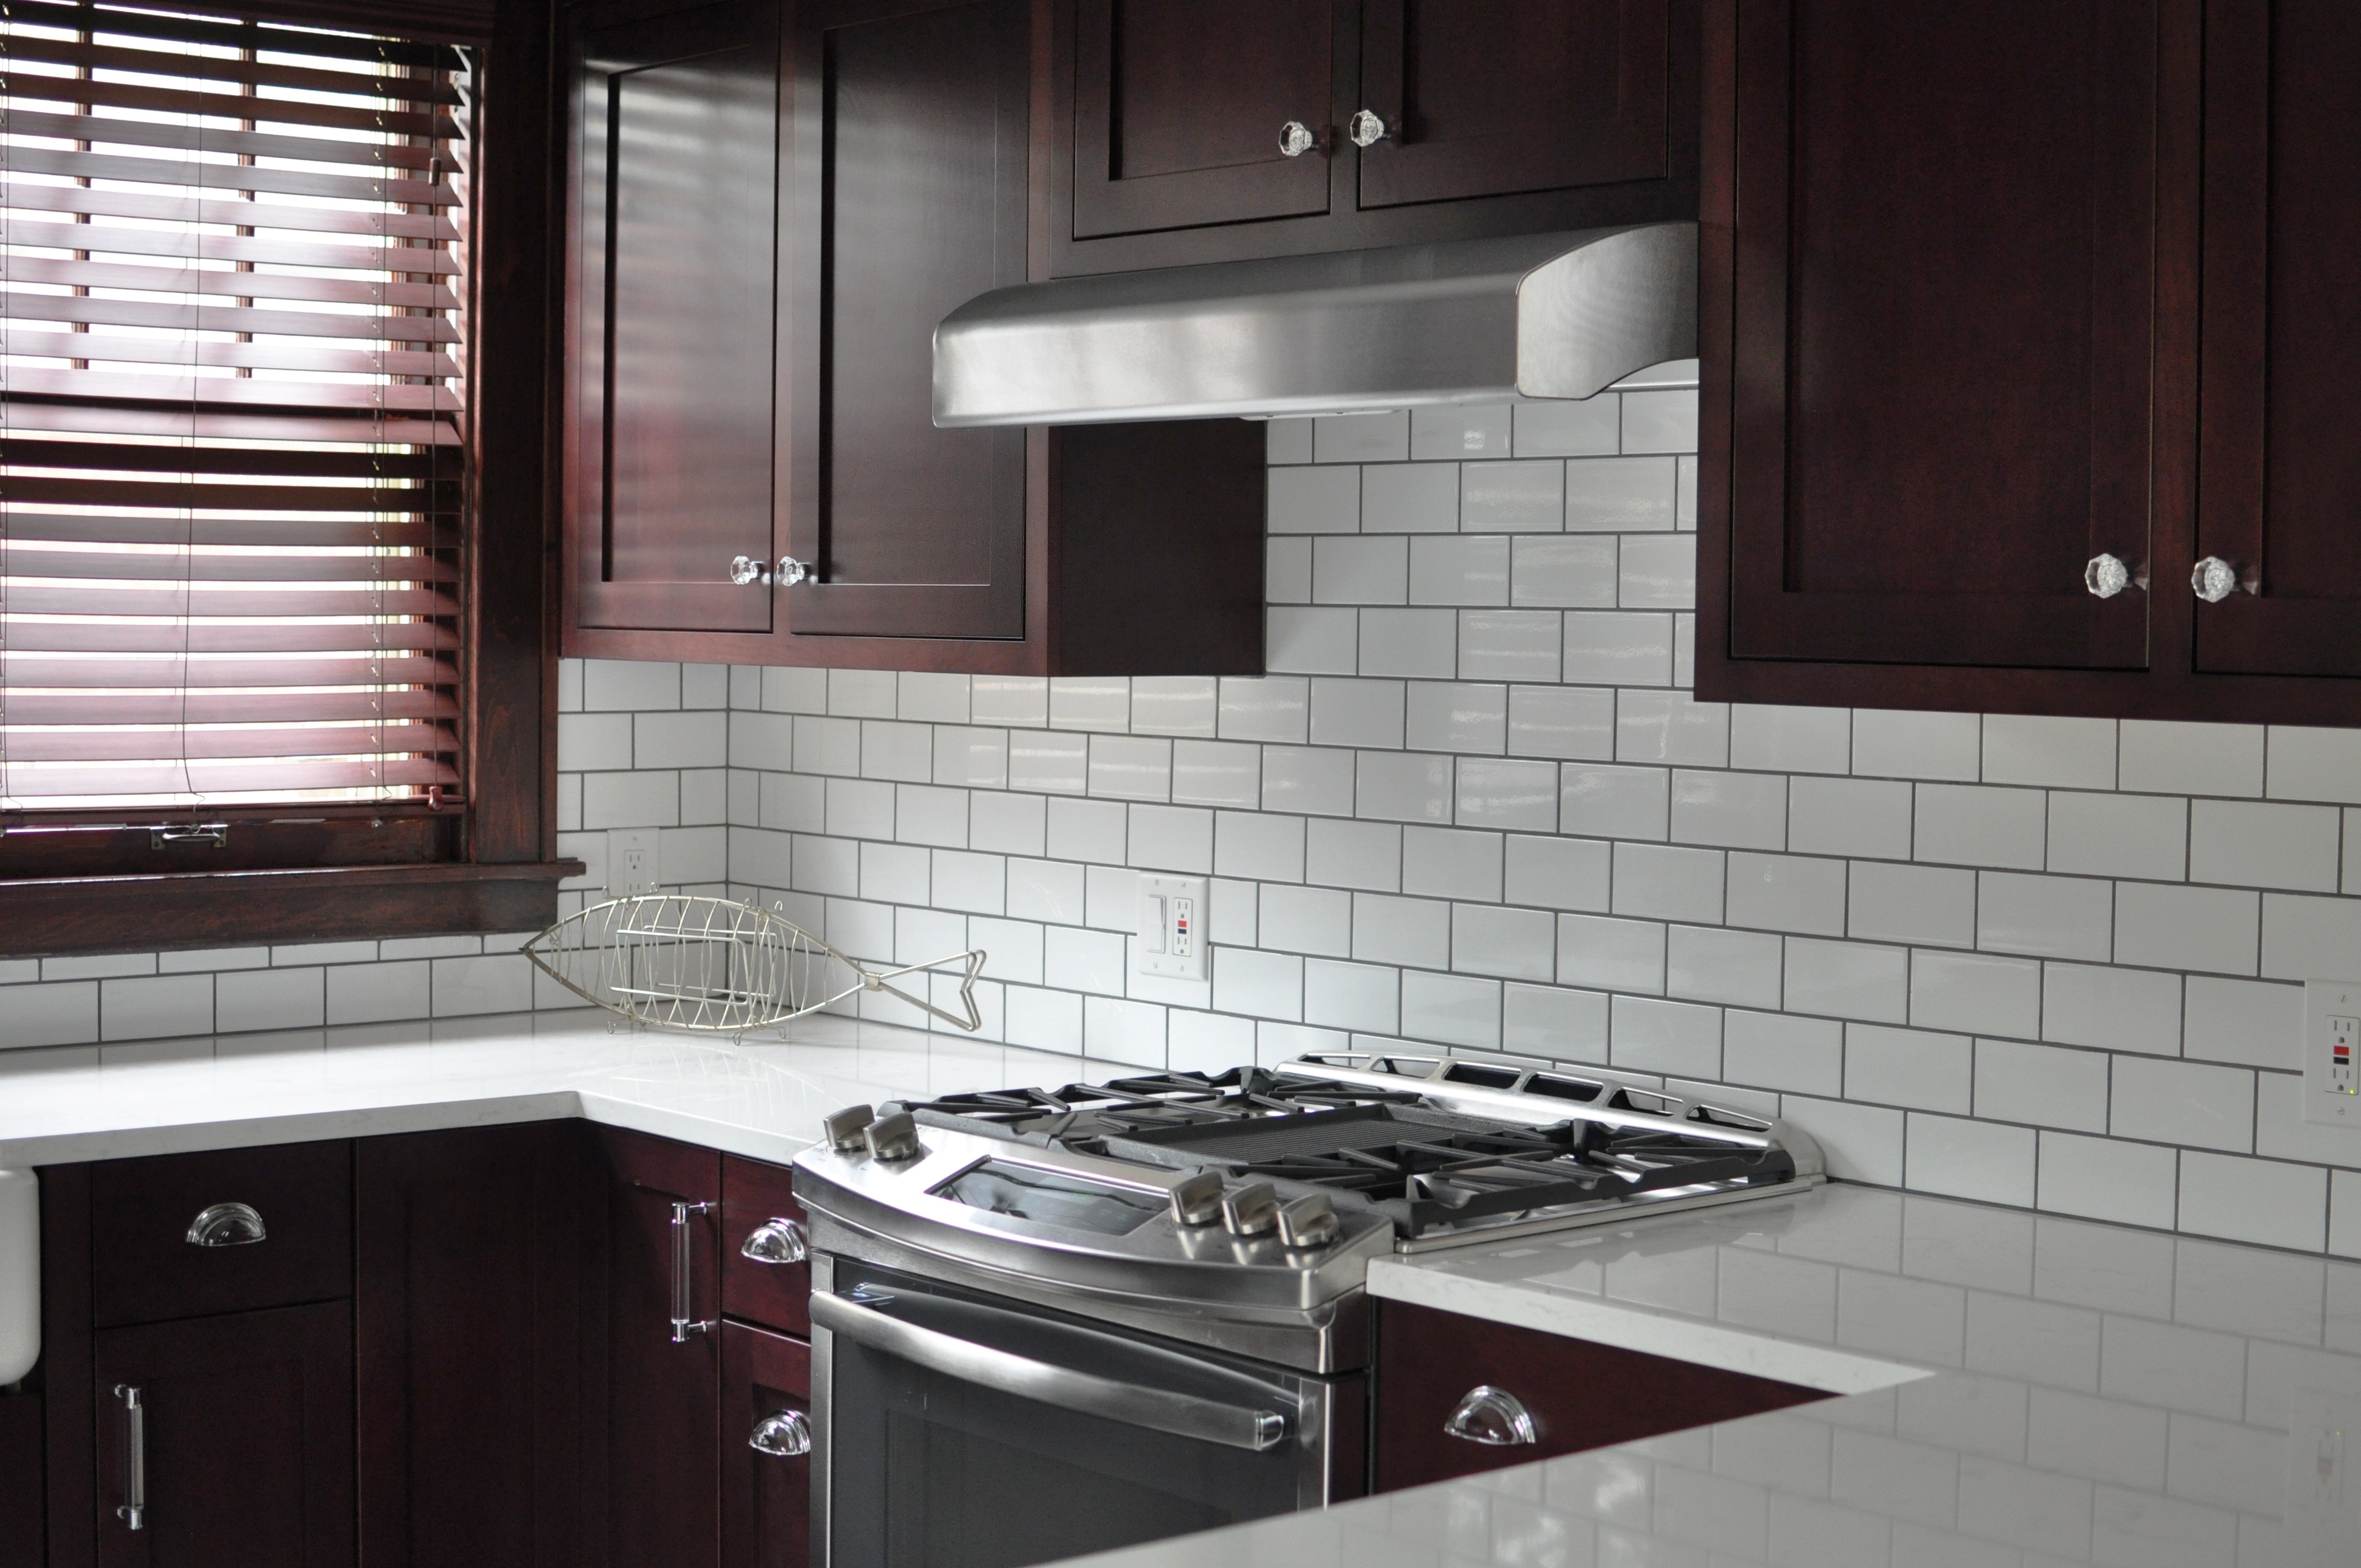 Heritage Hill Kitchen Renovation - Keeler Products